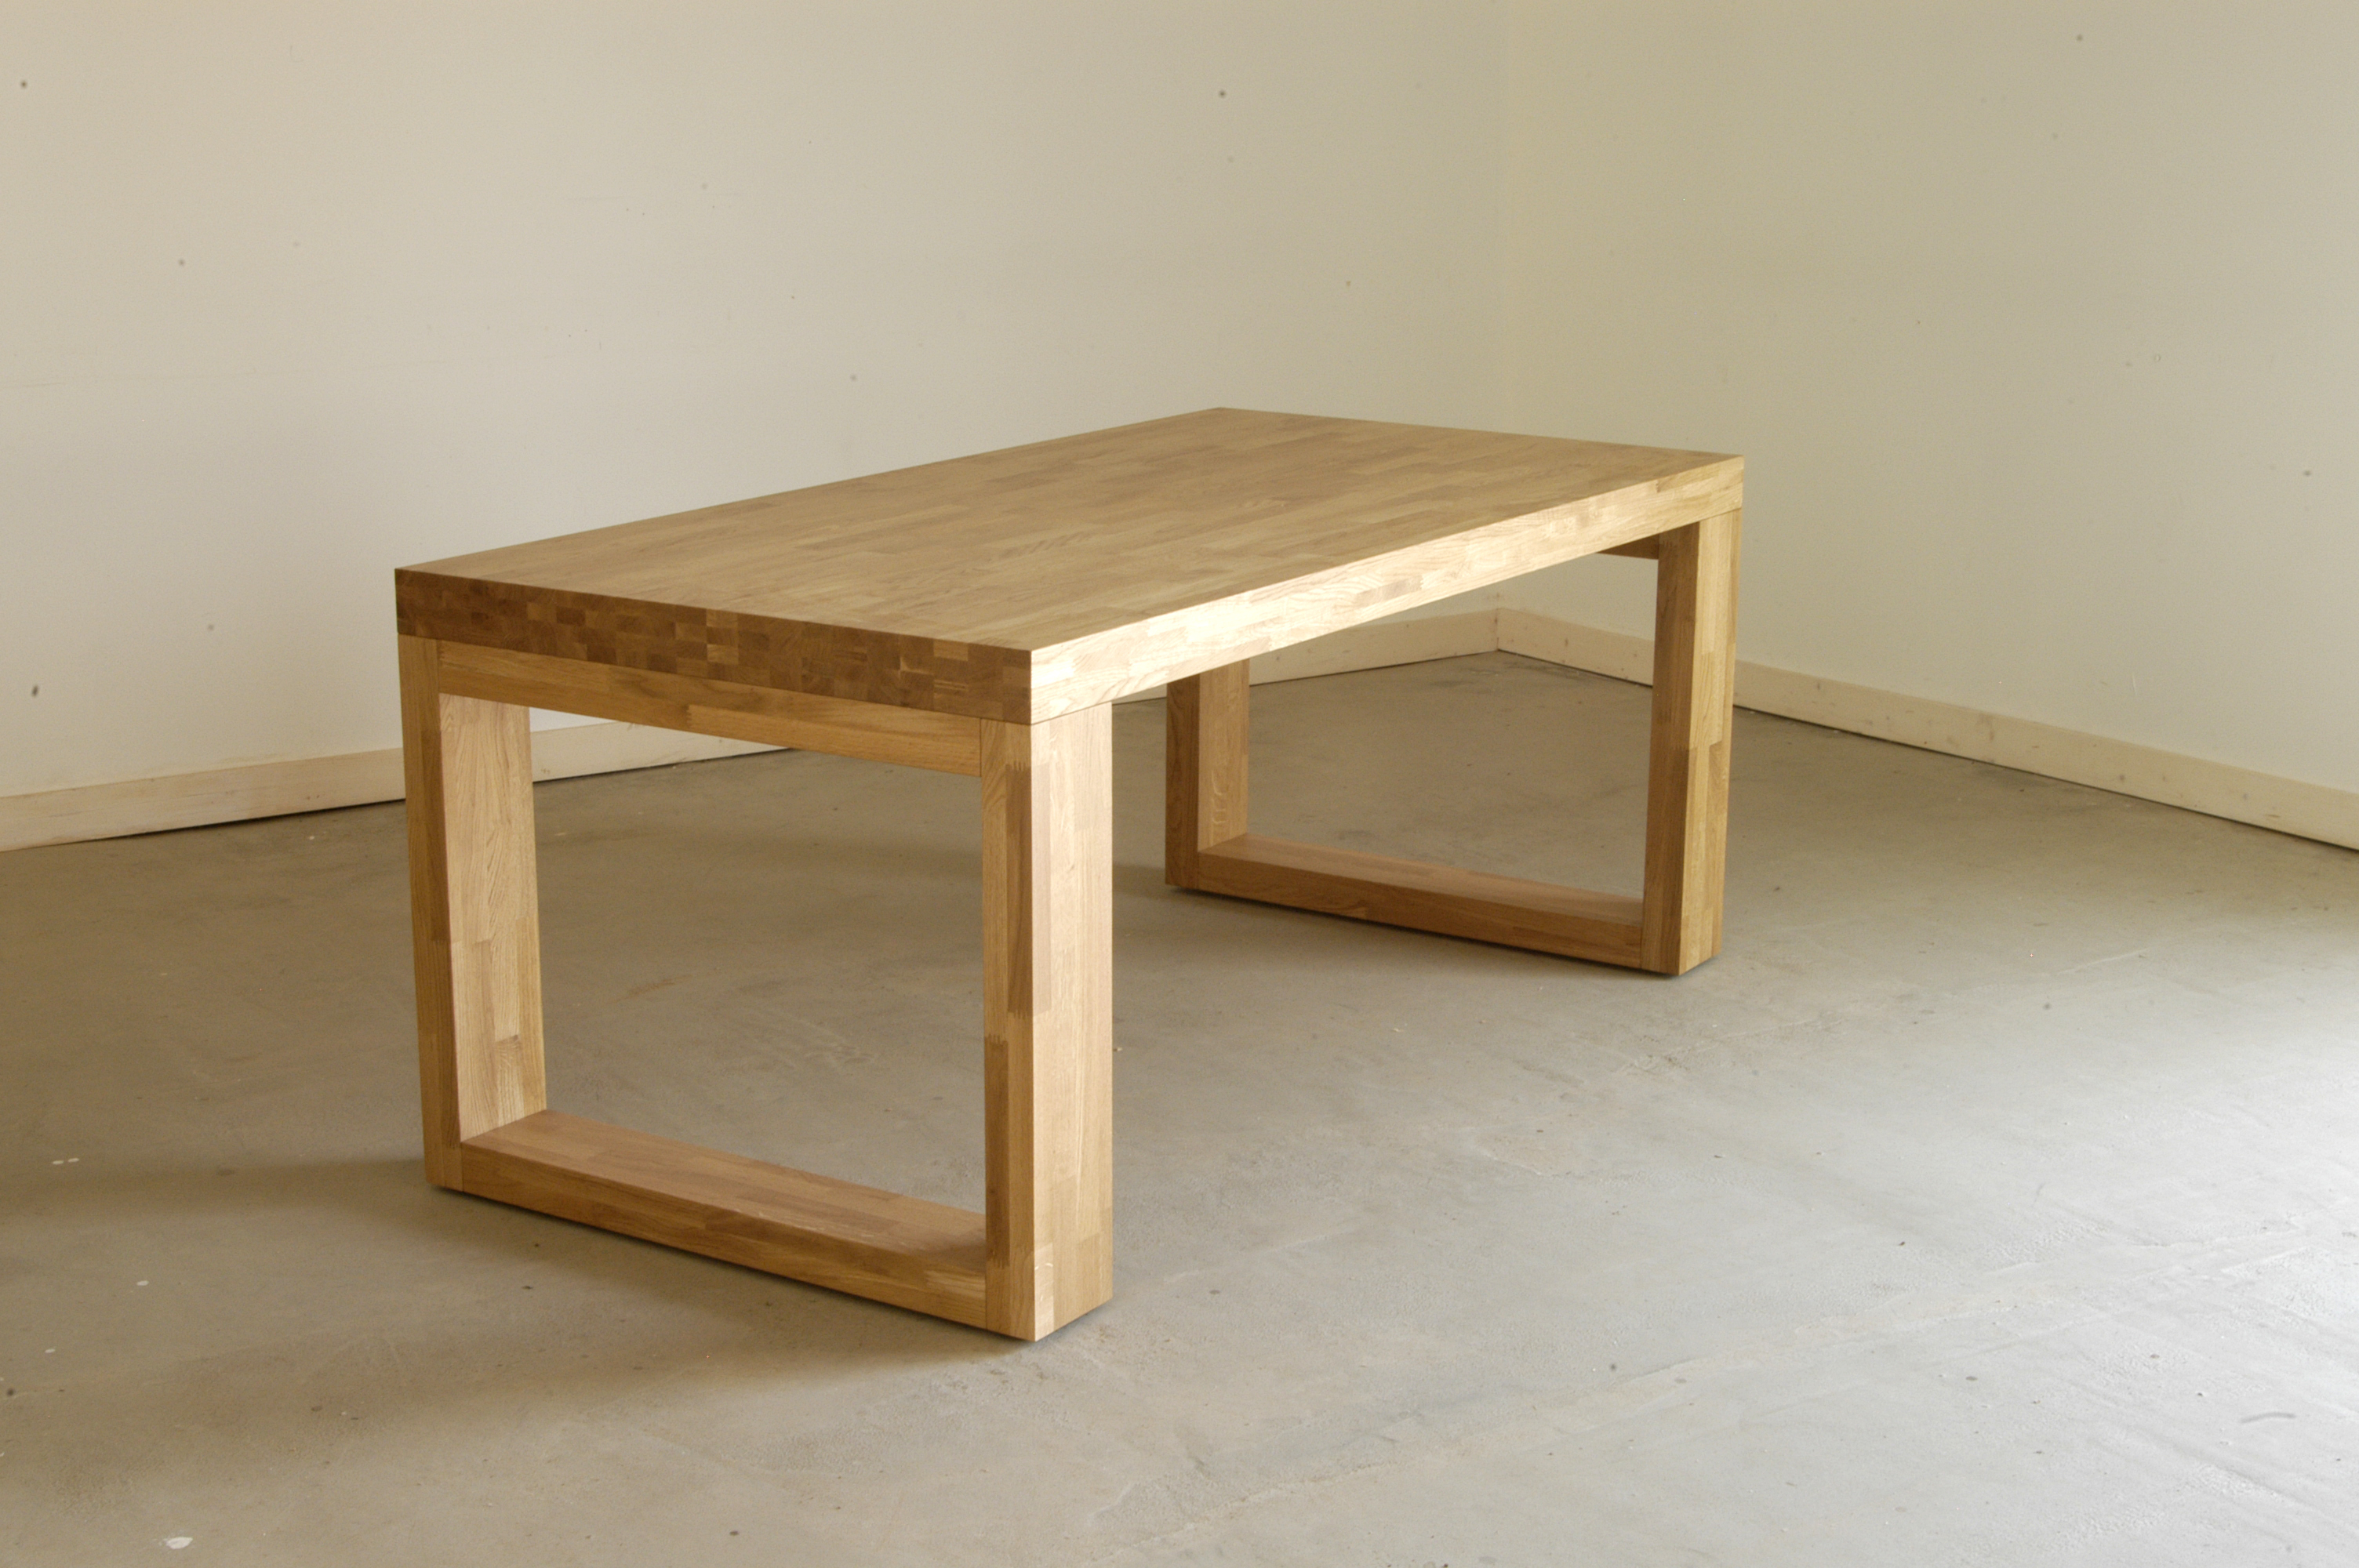 Table bois moderne - Table moderne bois ...